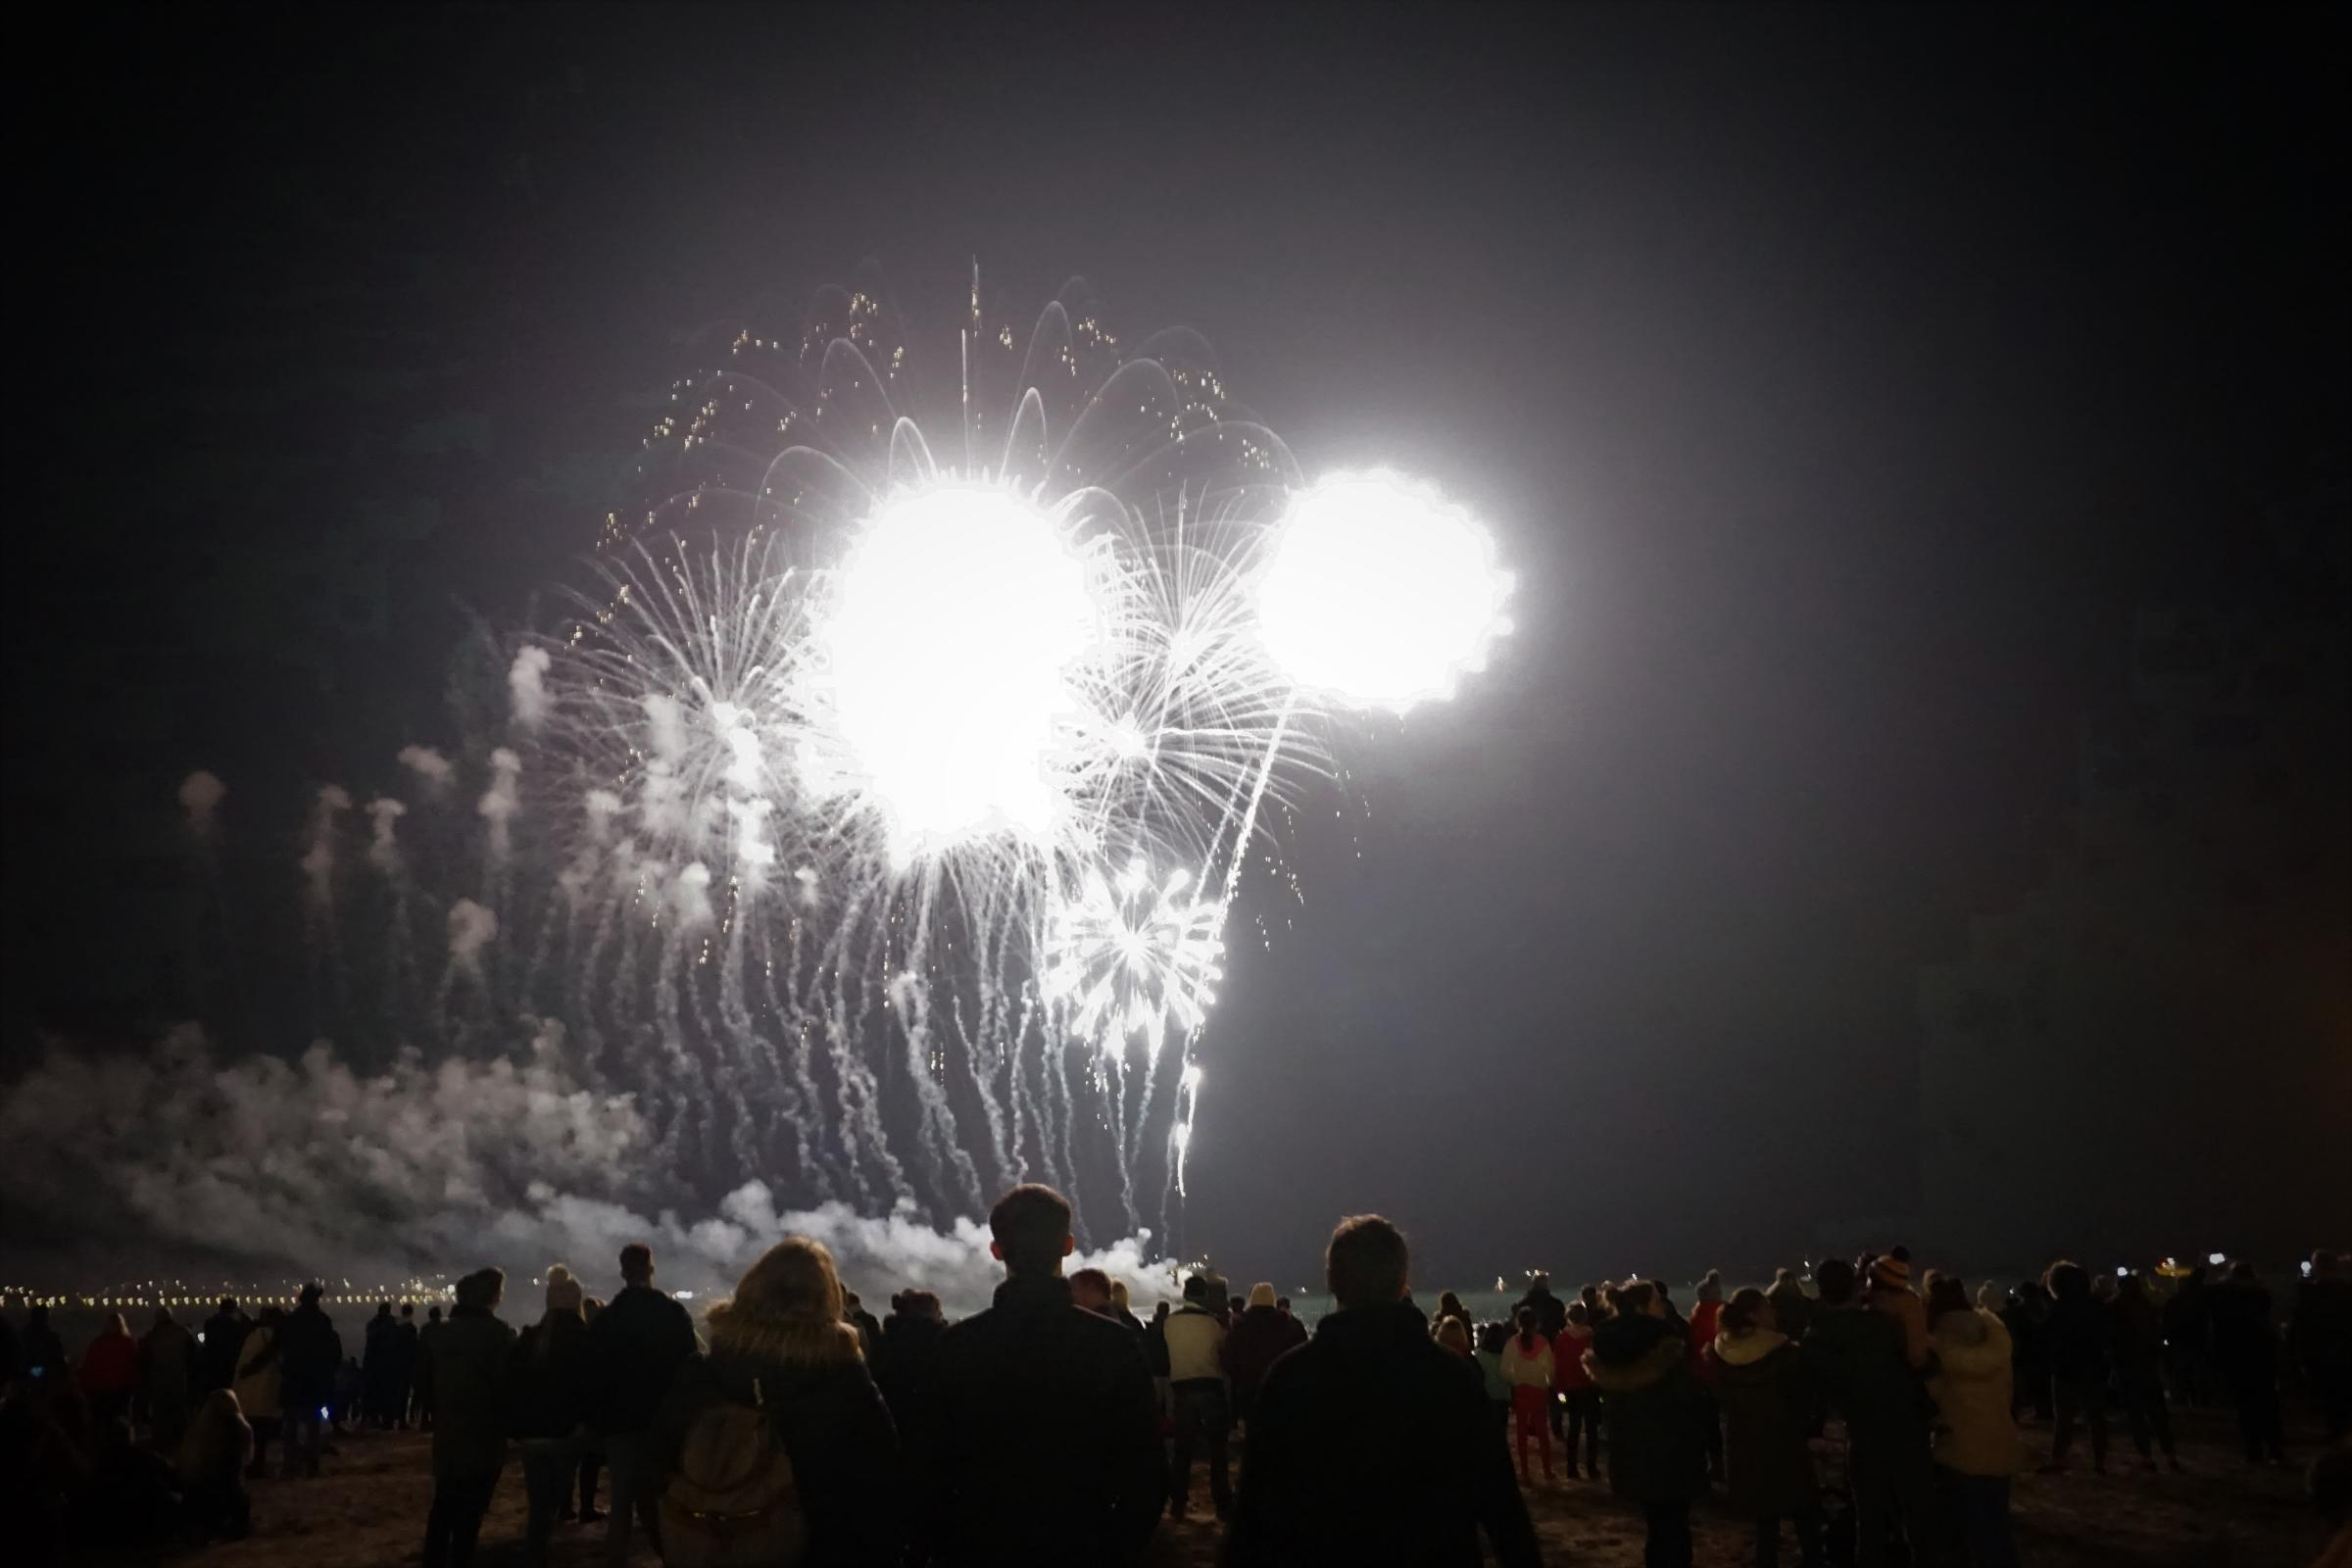 Consultation launched to address concerns on the misuse of fireworks